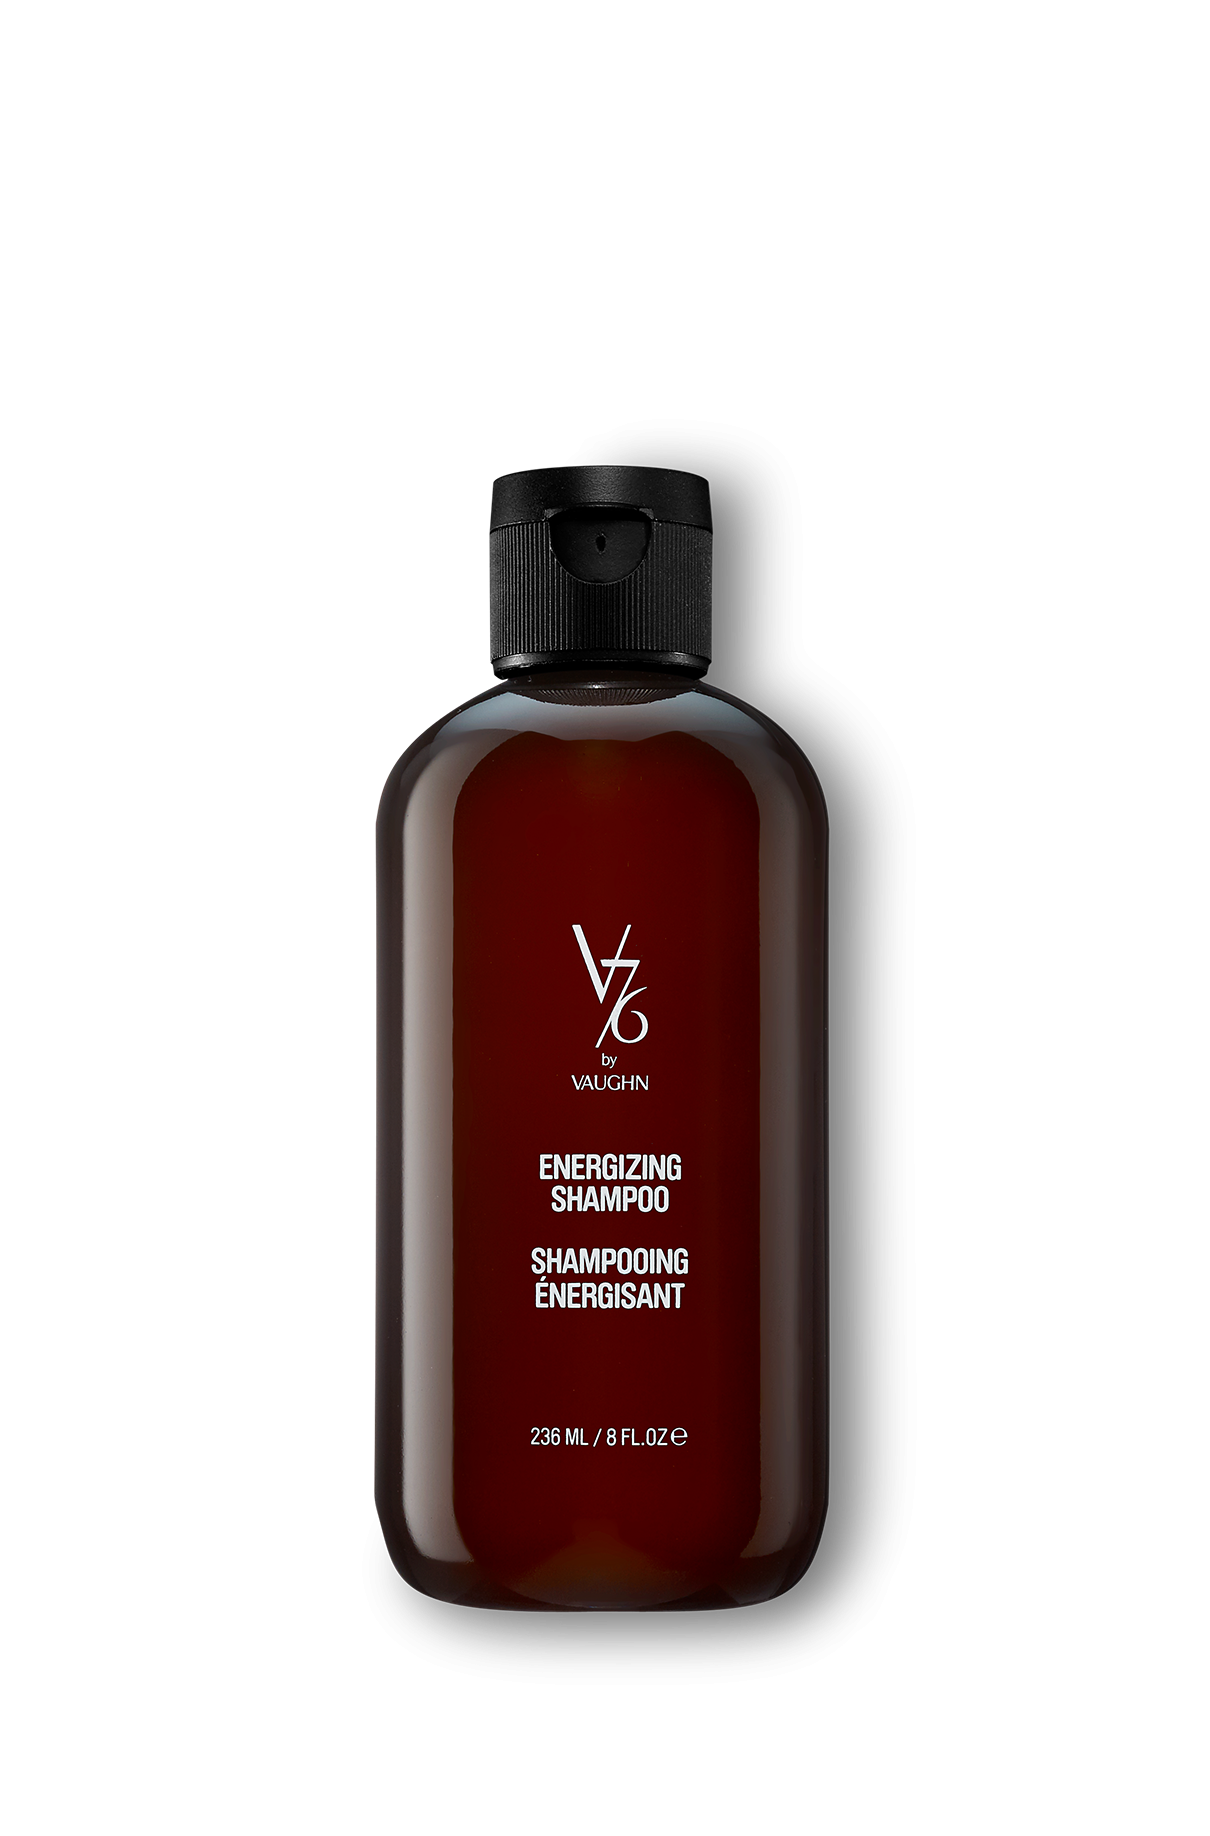 V76 by Vaughn  Energizing Shampoo, 8 oz. $19.00